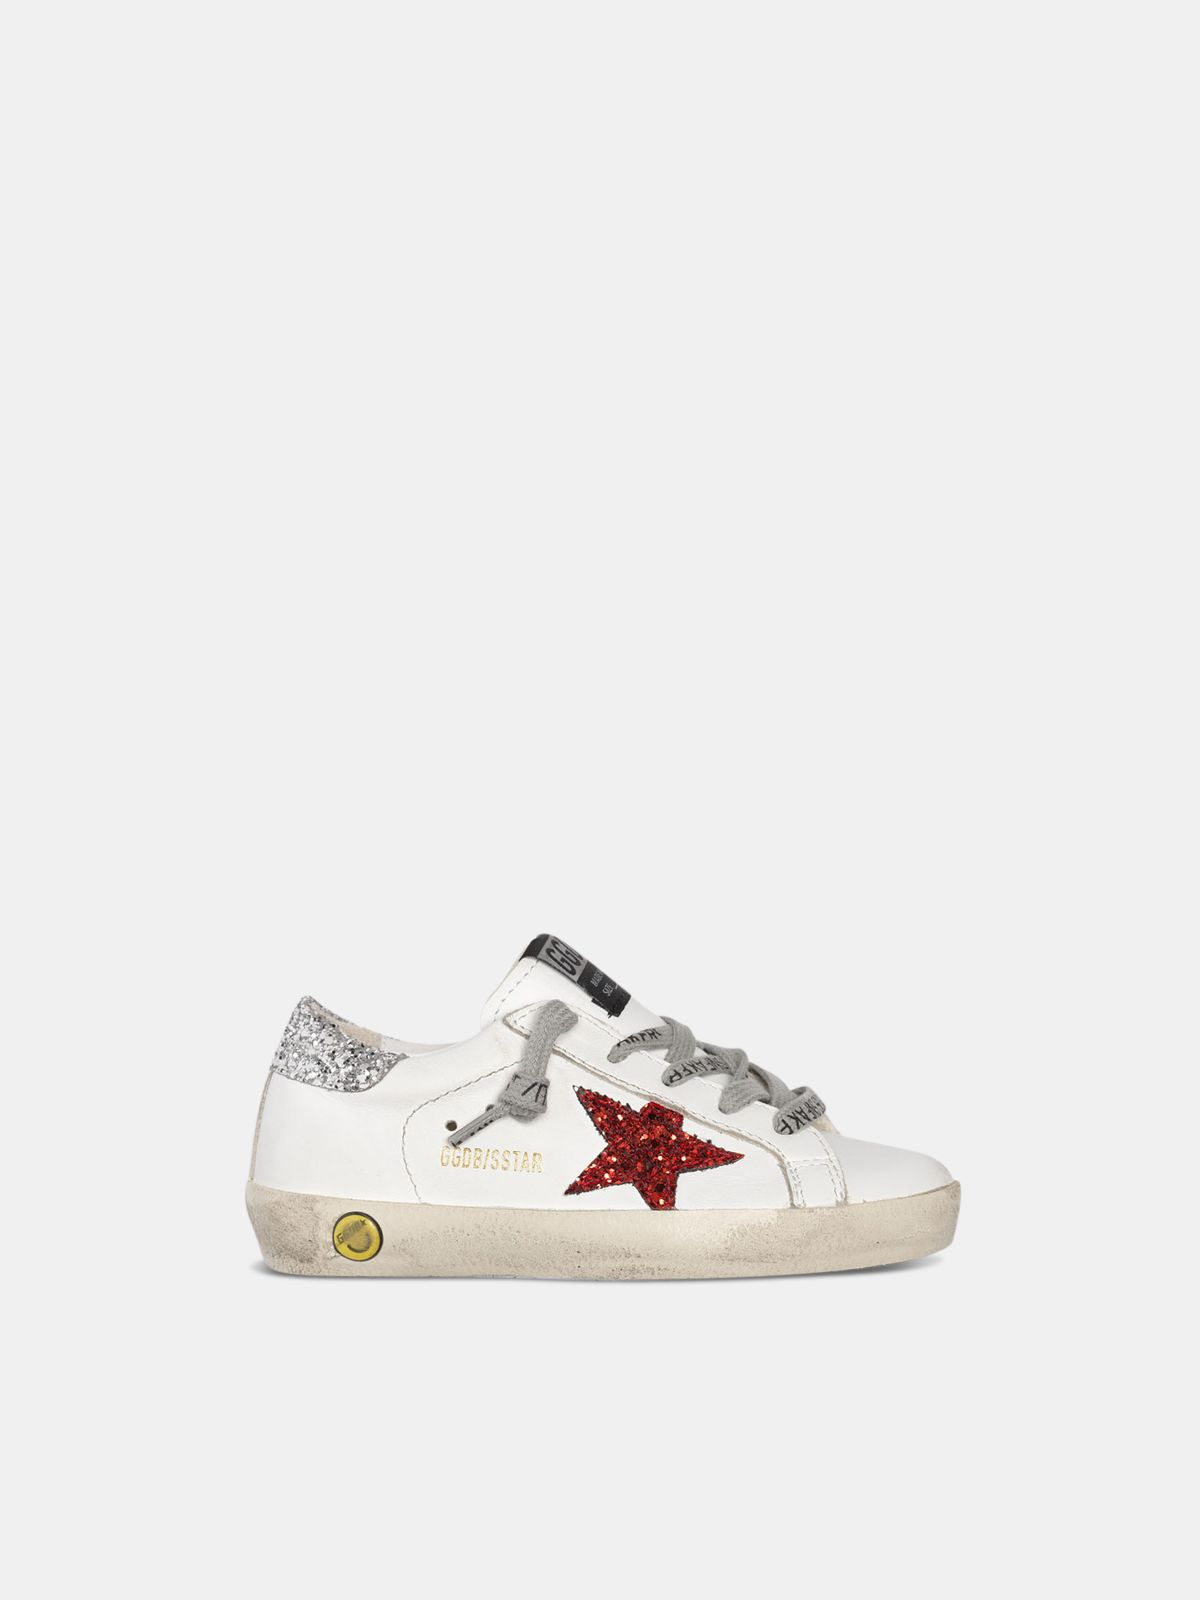 Super-Star sneakers with glittery red star and glittery silver heel tab